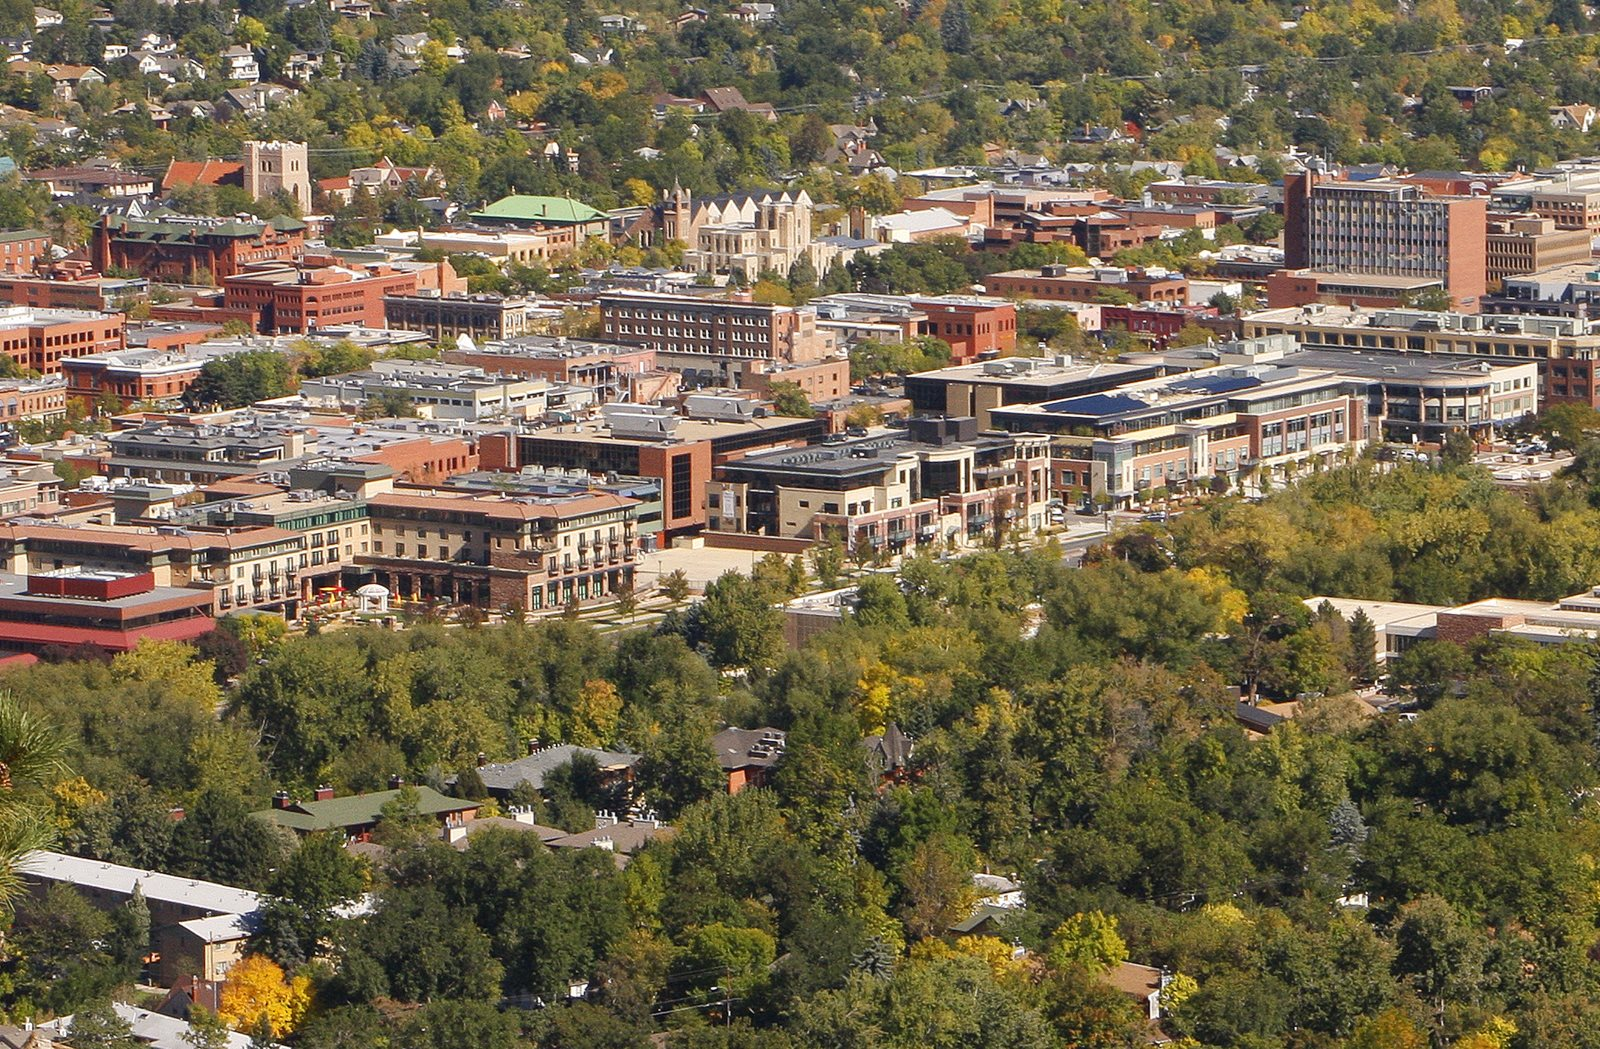 boulder county dating Great place for college kids and families but for singles boulder is lacking  jefe in the co re: shortage of single women in boulder 1/11/2008 11  shortage of single women in boulder 1/12.